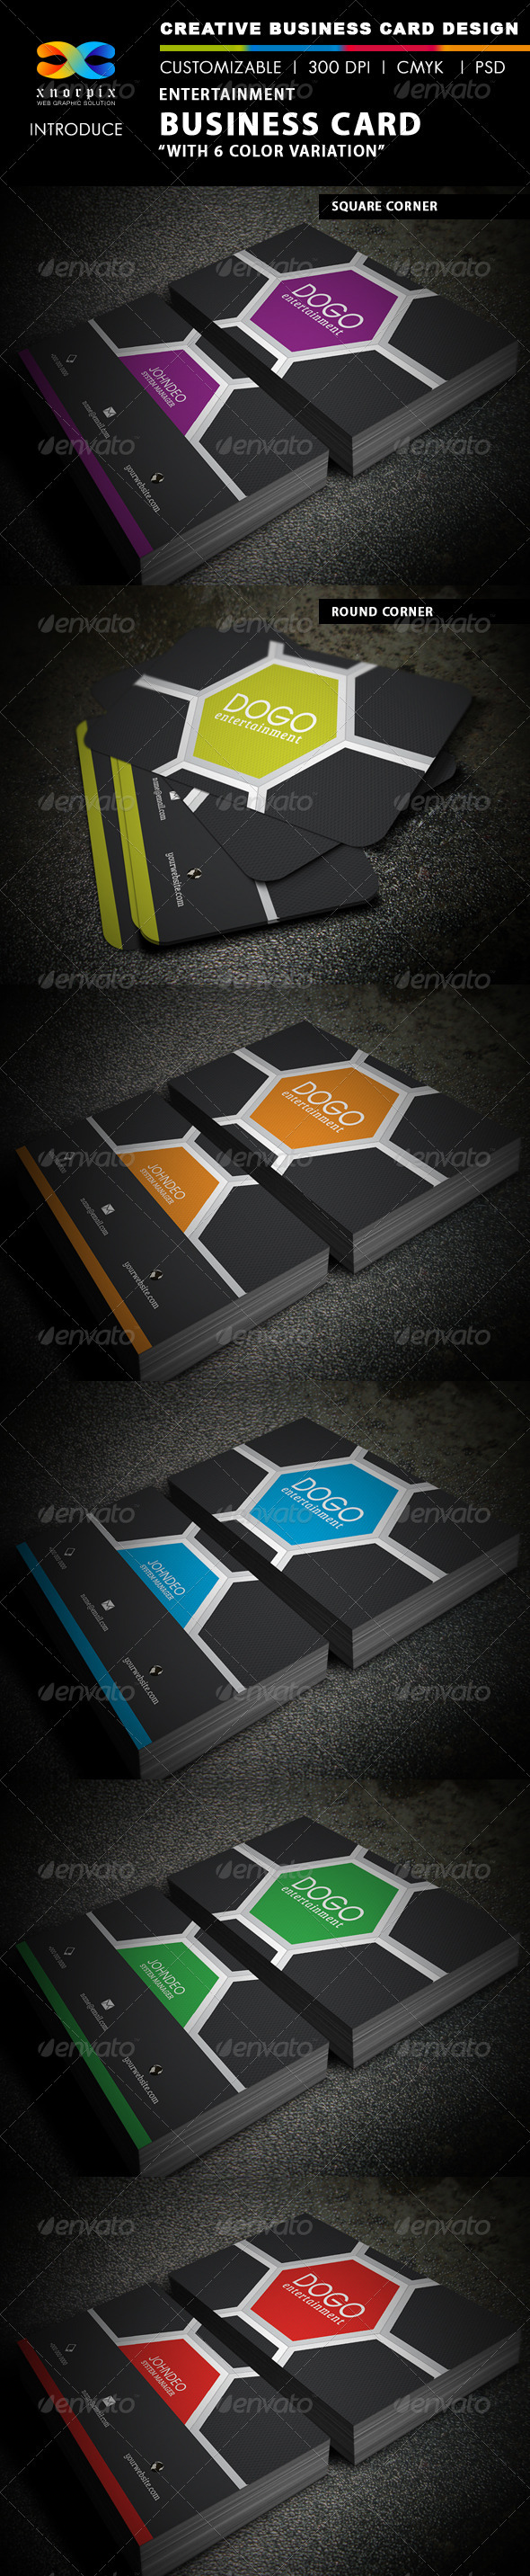 Entertainment Business Card by -axnorpix | GraphicRiver